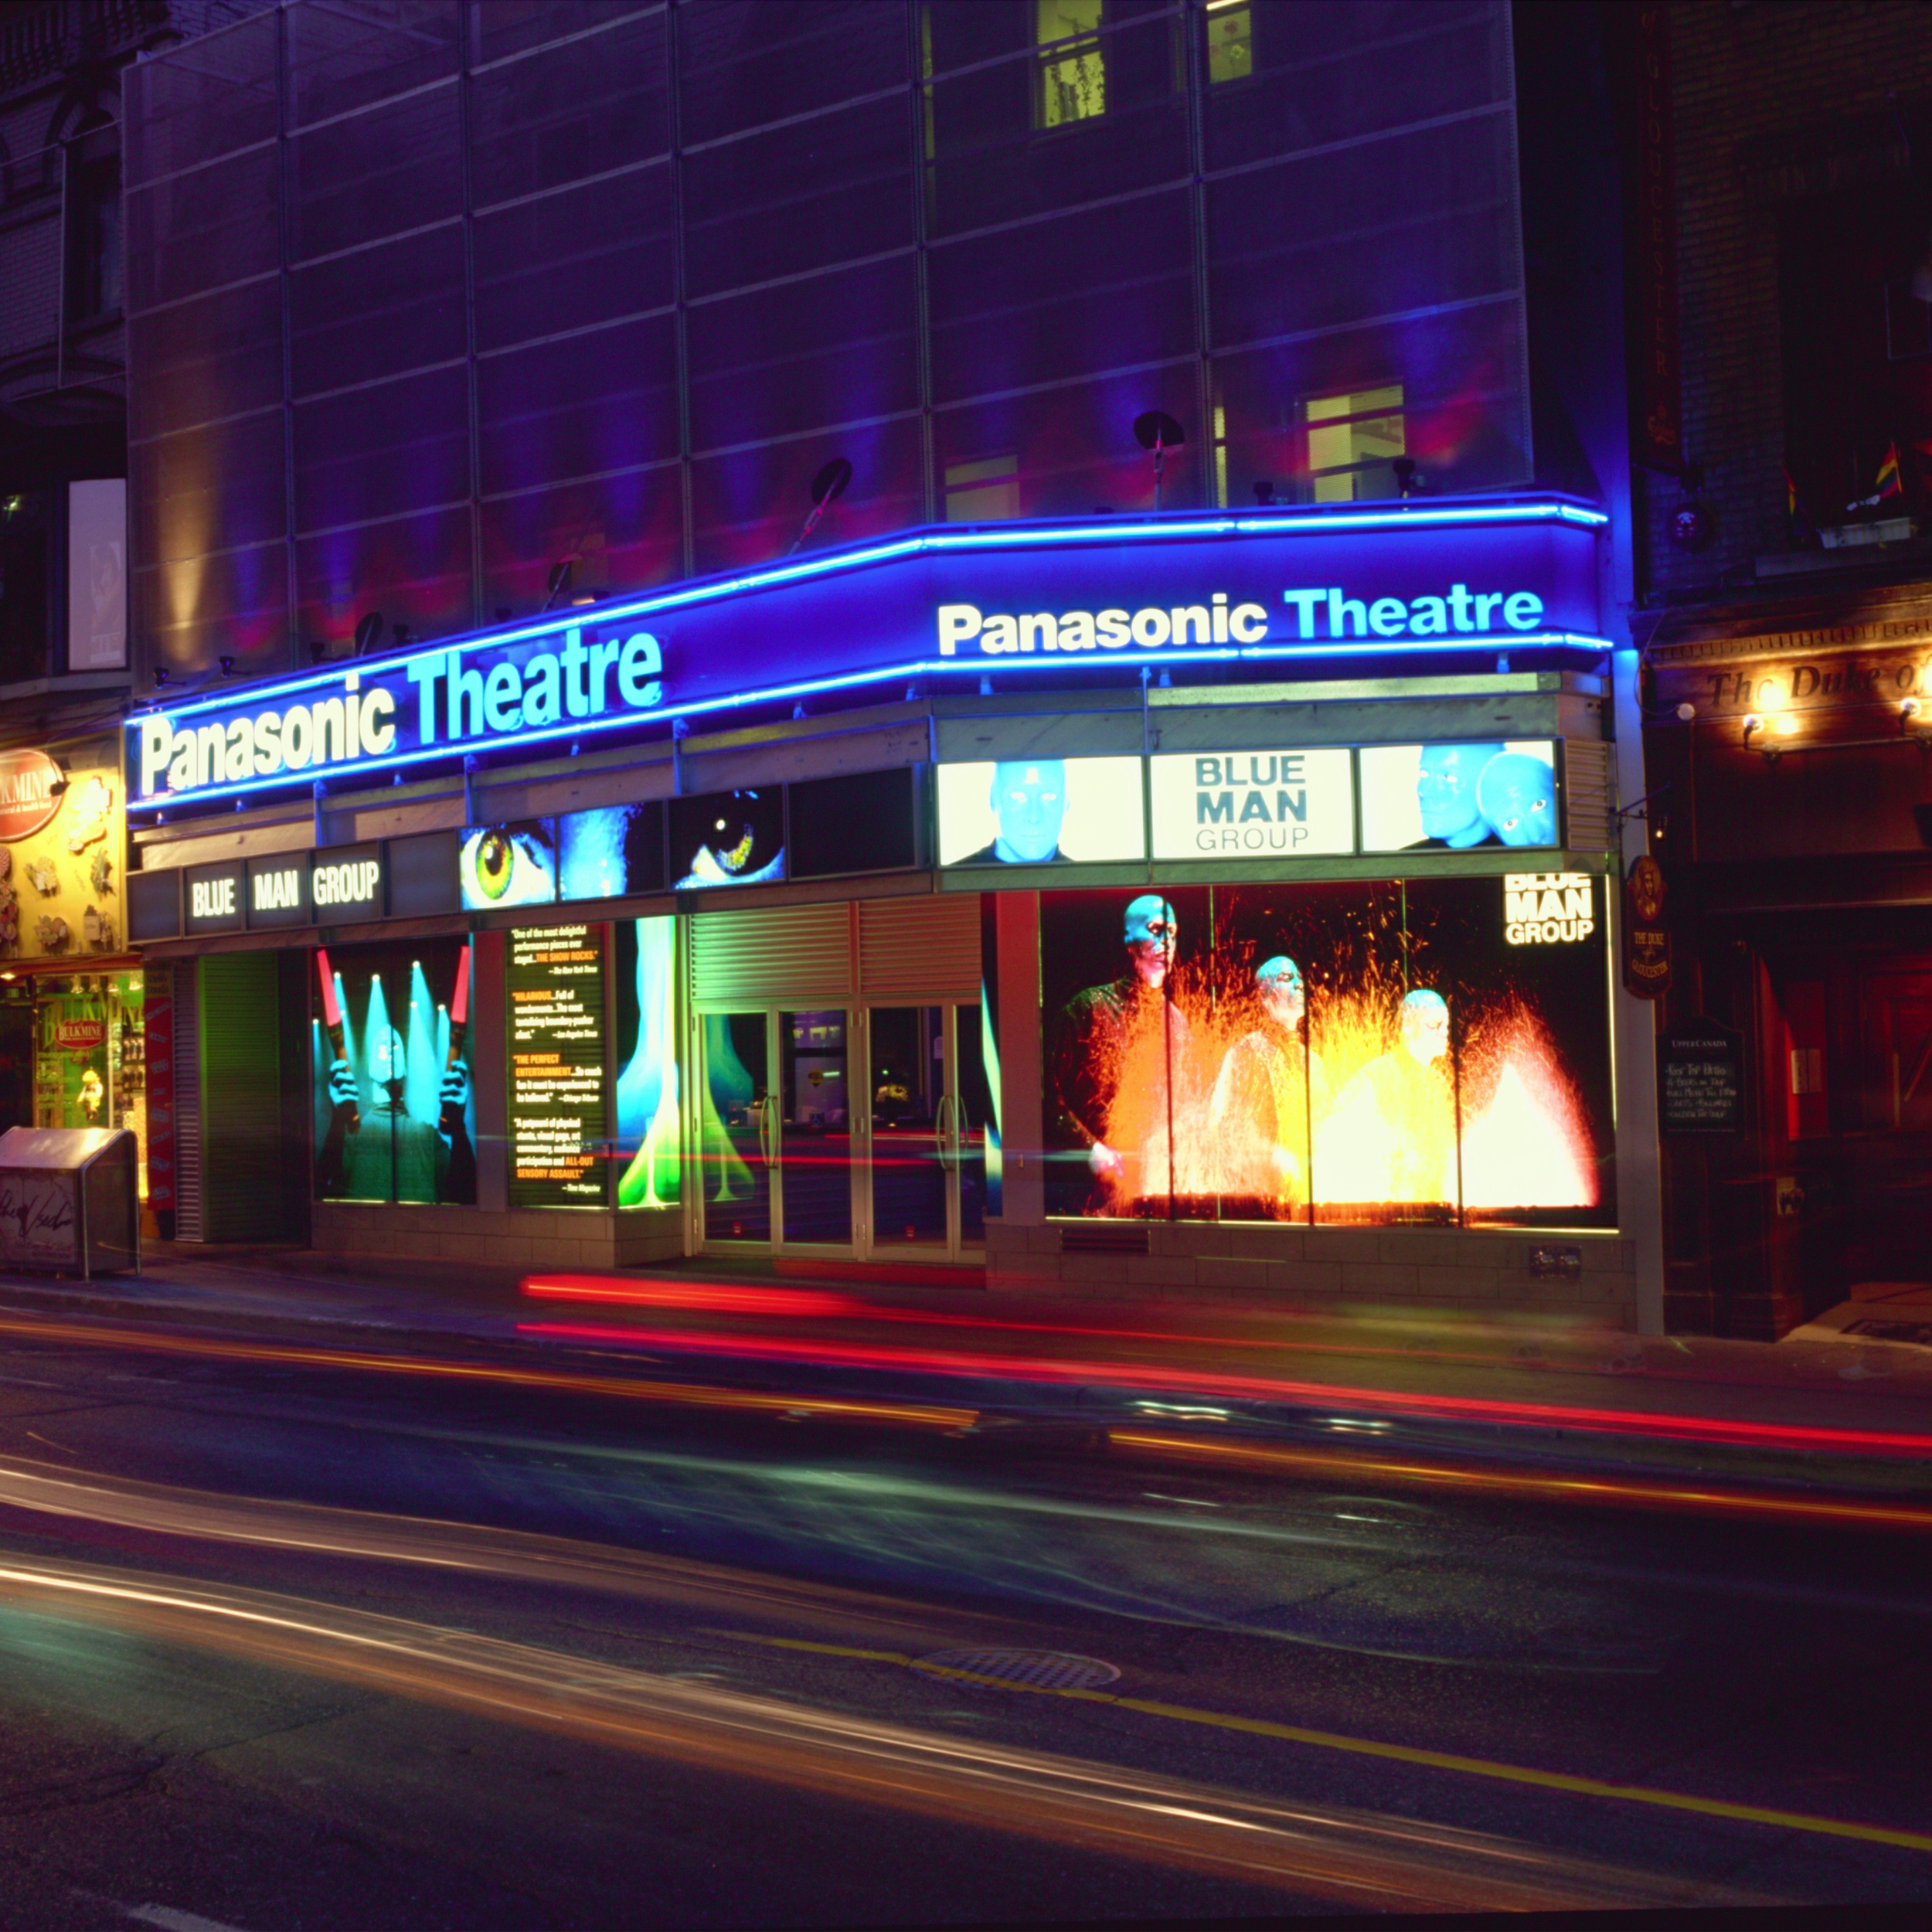 Panasonic Theatre